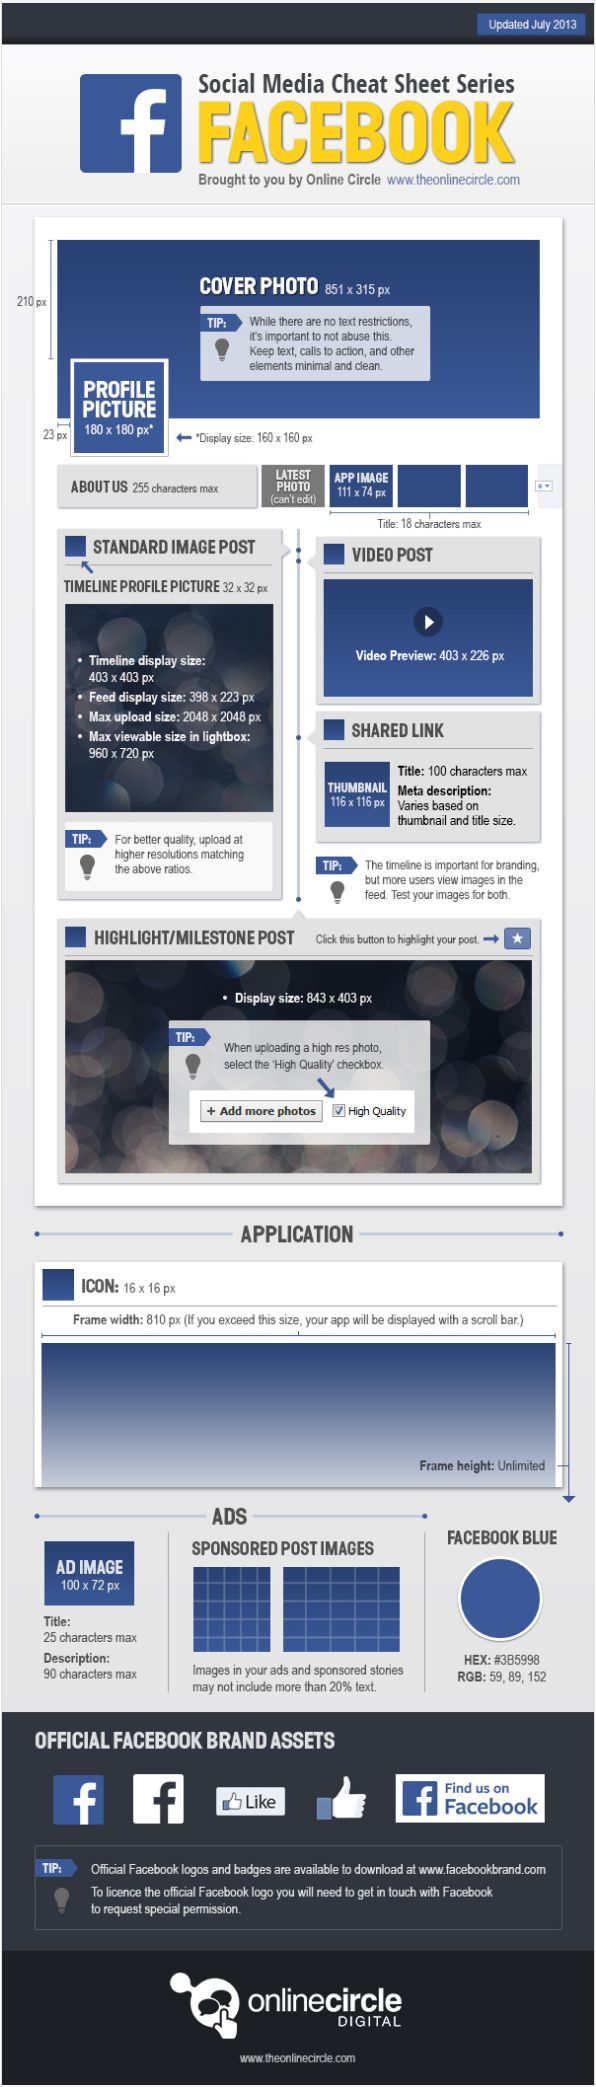 facebook-sizes-dimensions-july-2013